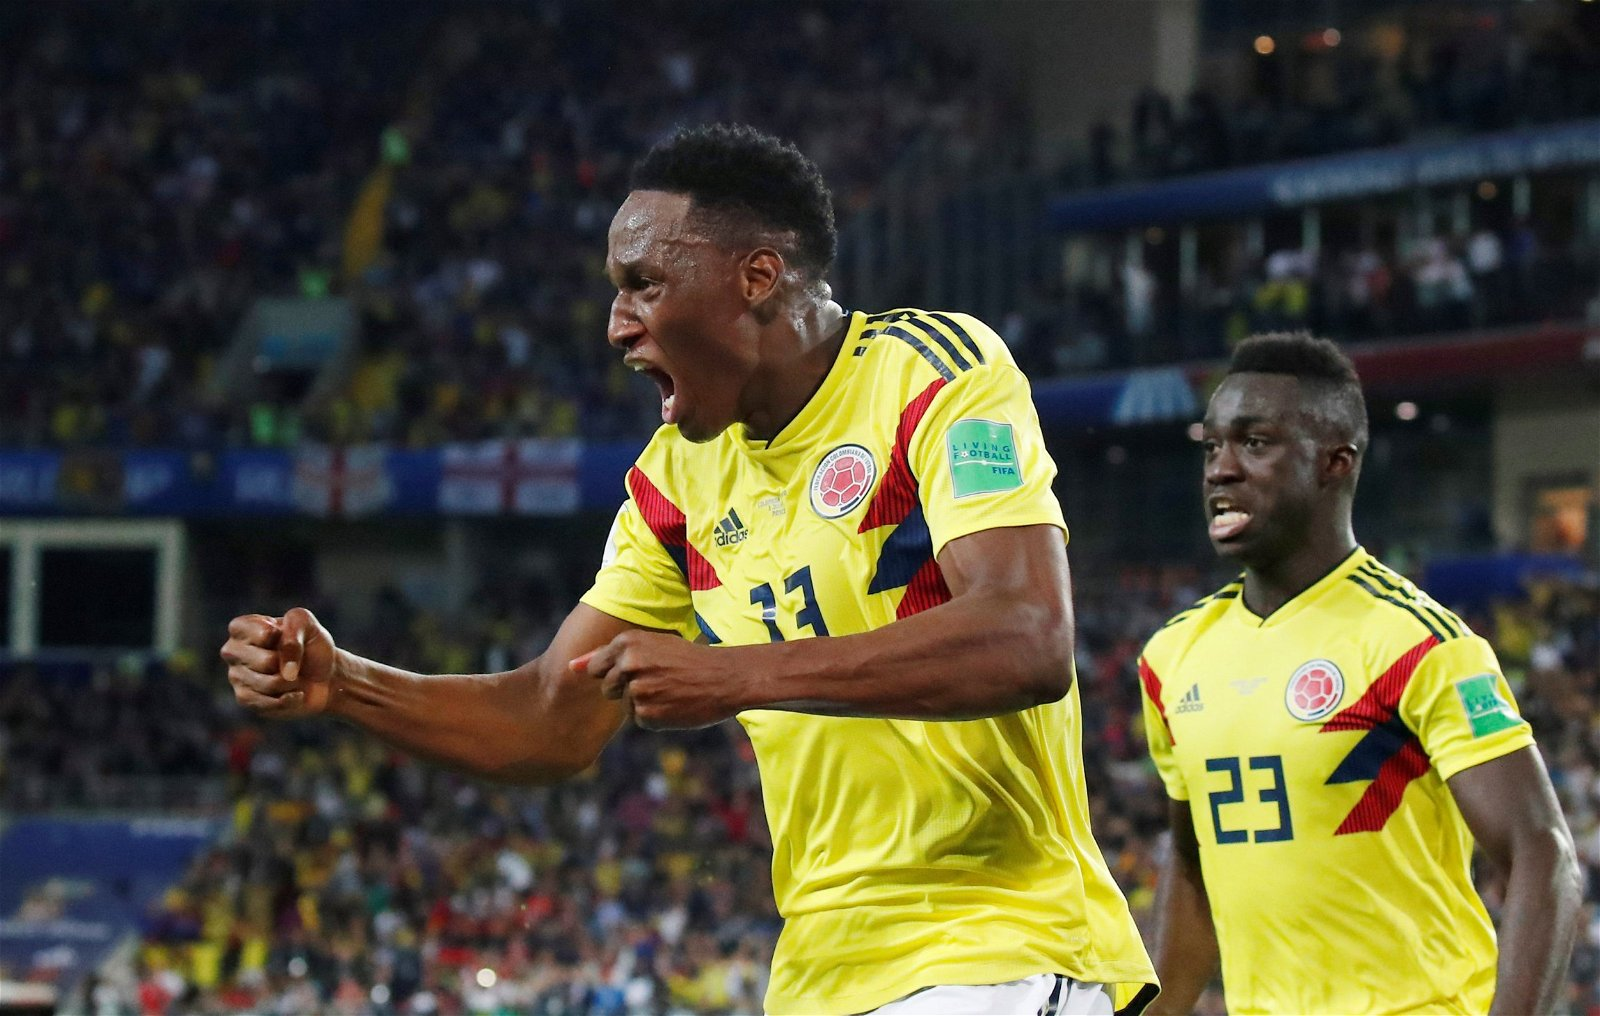 Yerry Mina celebrates scoring for Colombia against England at the World Cup